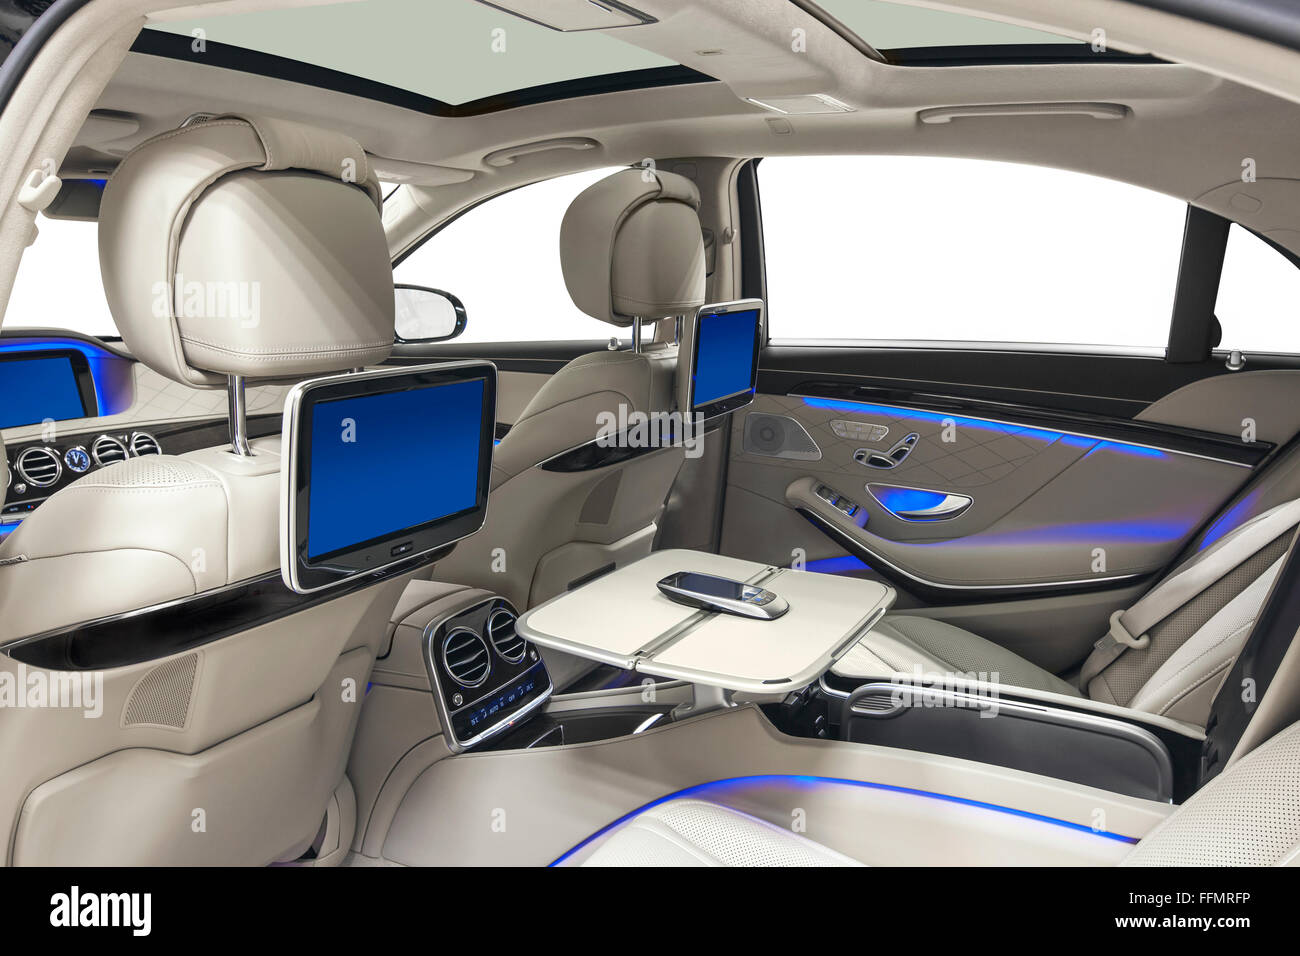 Cleaning display stock photos cleaning display stock images page 2 alamy for Car interior cleaning services